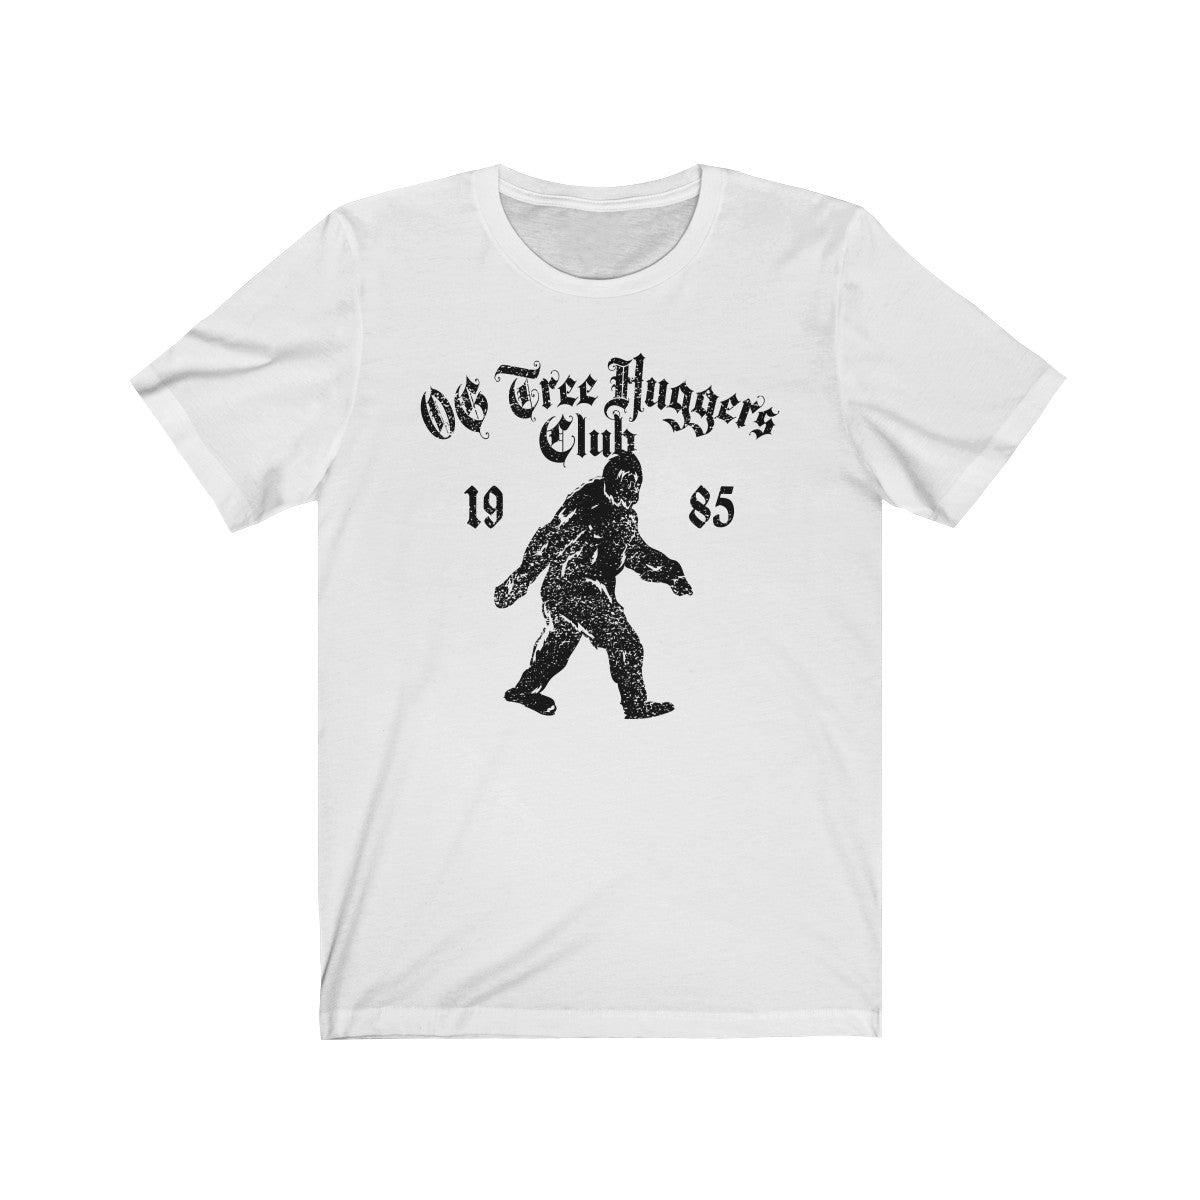 OG Tree Huggers Club - T-Shirt